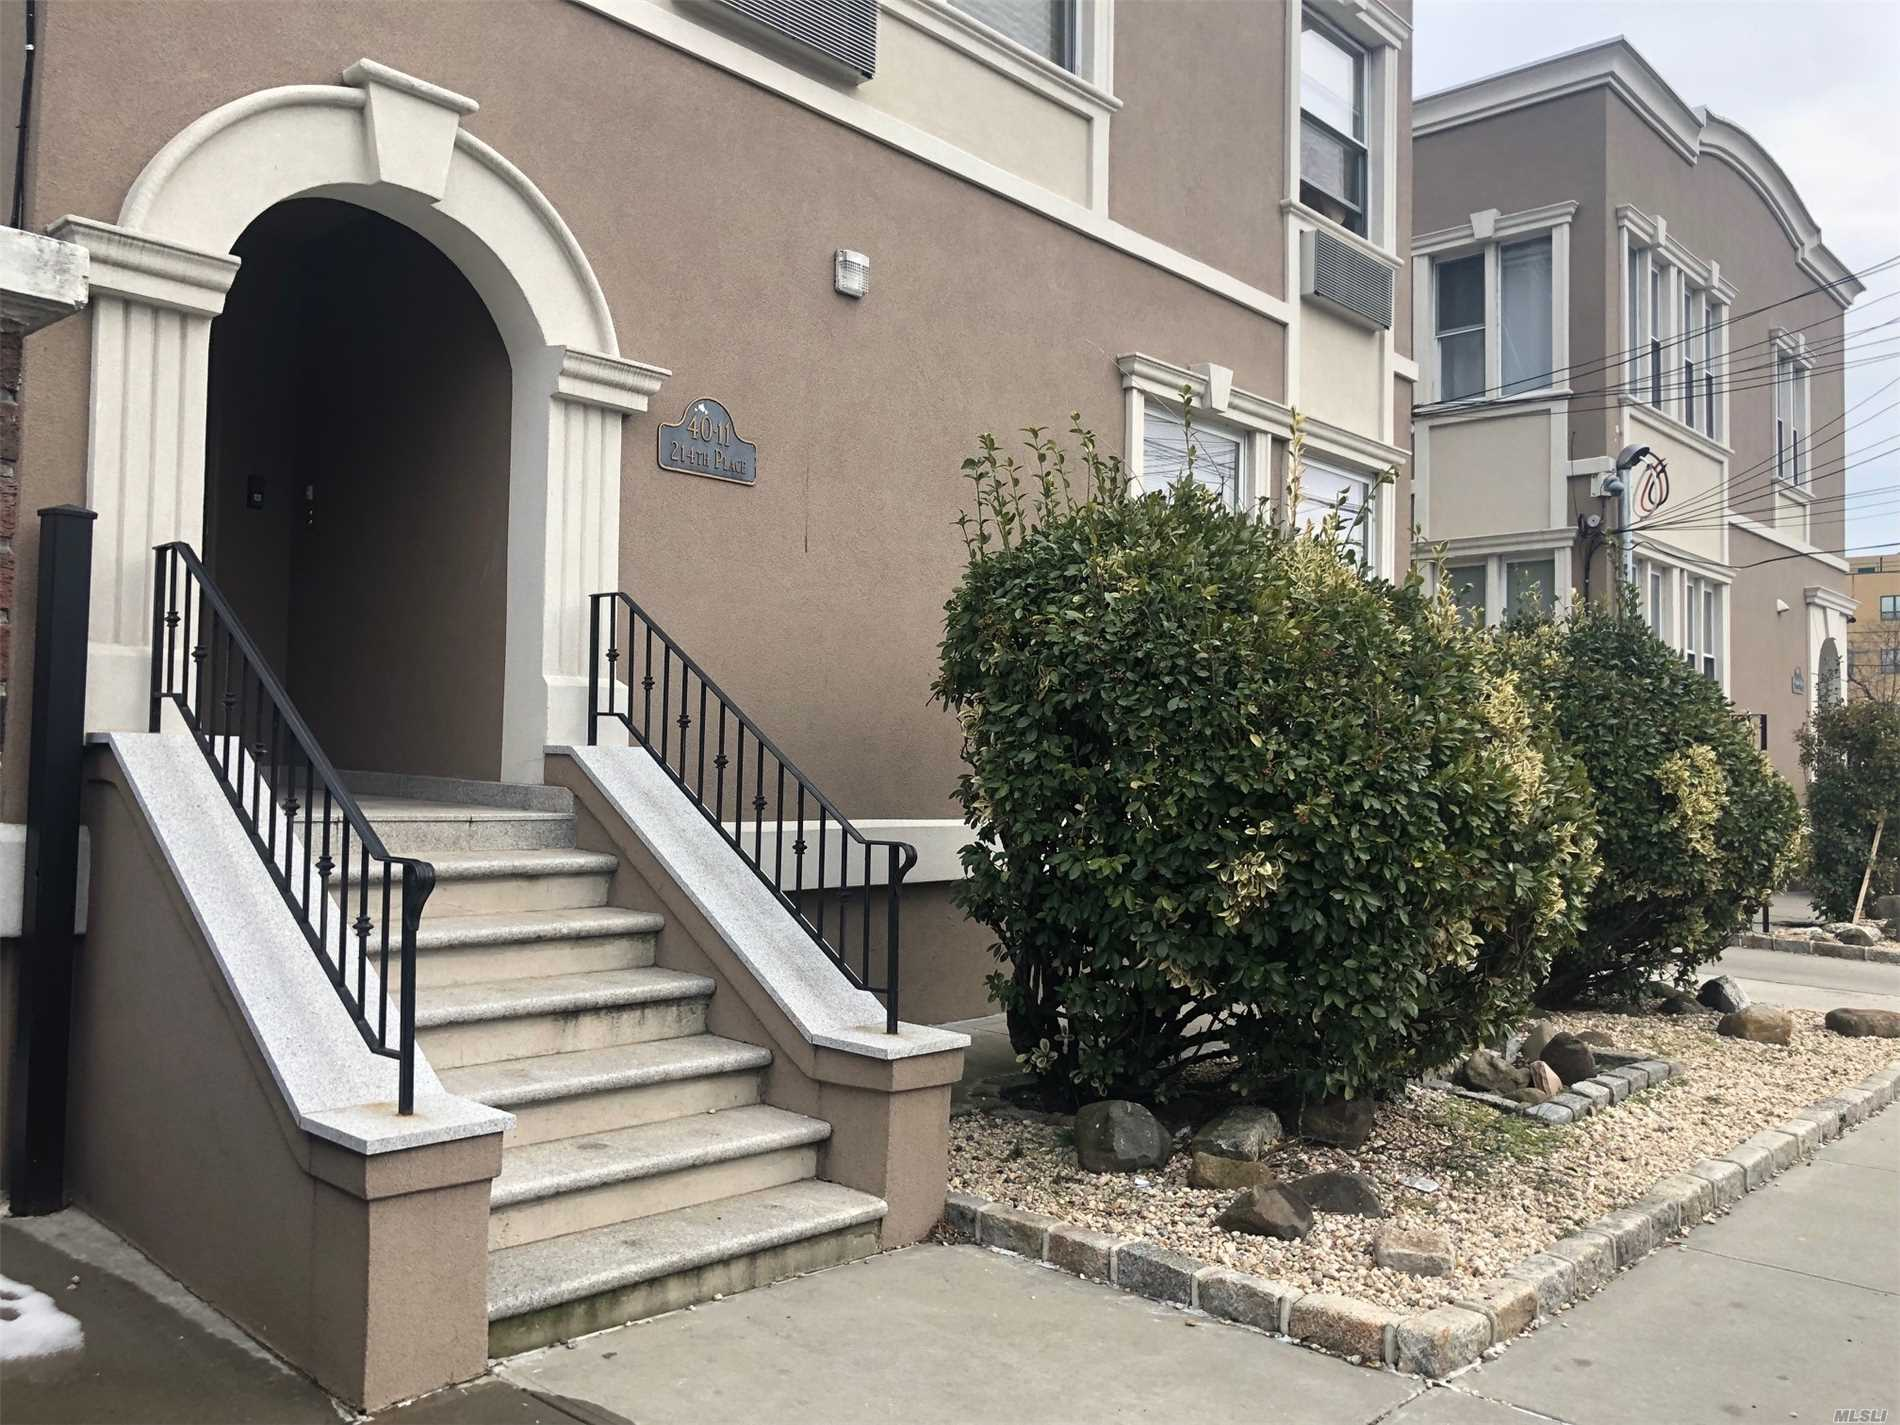 Commuters Dream Apartment! Located only One block to the Bayside Bell Blvd LIRR as well as culturally enriched eateries and Lounges. Apartment was completely remodeled in 2017 and boasts custom moca shaker cabinetry, granite counters,  state of the art fixtures, kitchen appliances and full size front load stack able washer dryer within the apartment. You have the option to choose between a one car garage spot or an outdoor parking spot for an additional monthly fee.